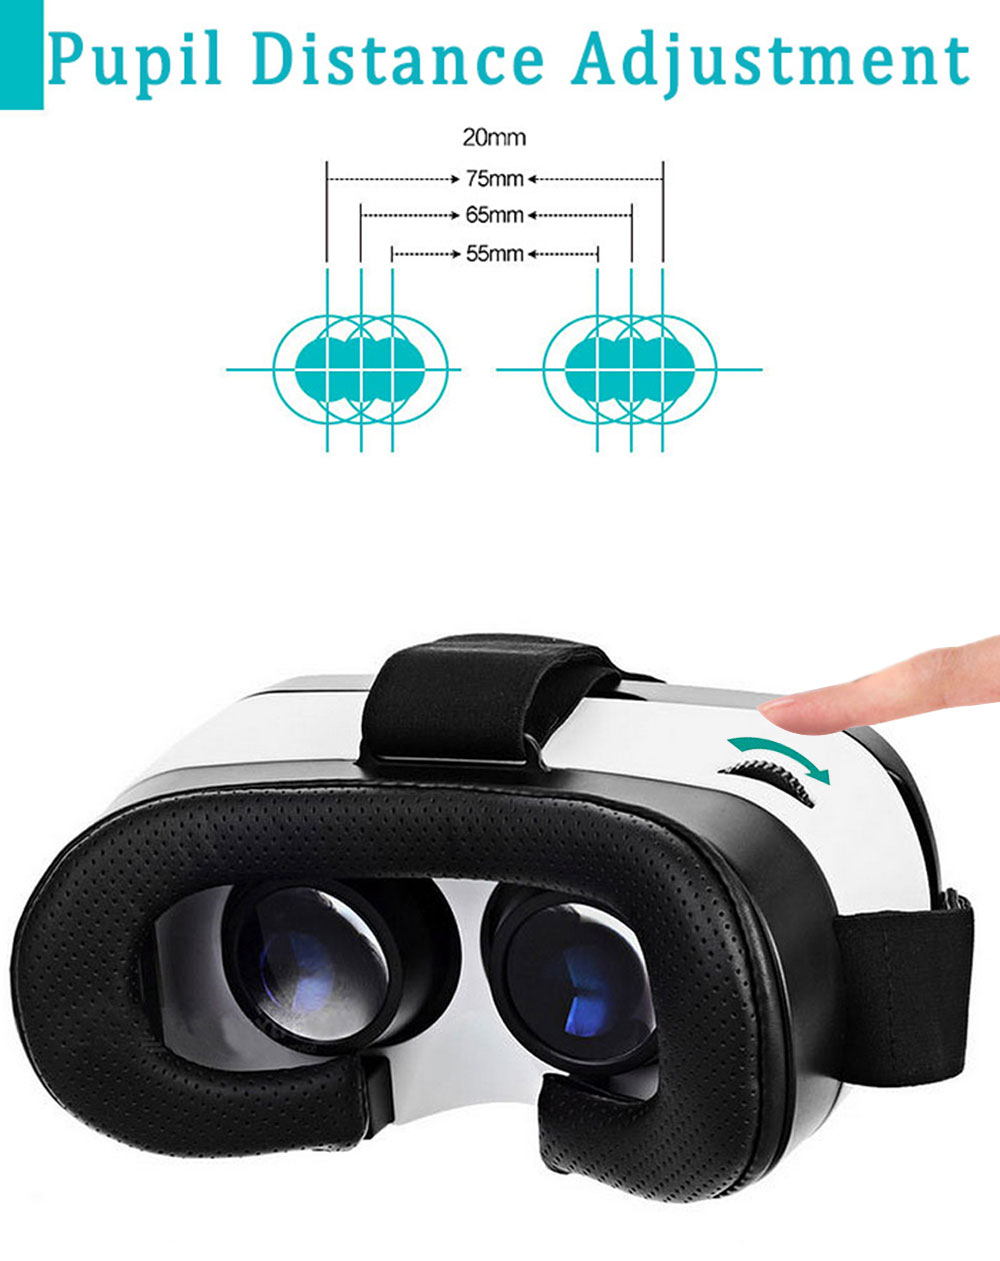 VR DAVI 3D Glasses Virtual Reality Headset Private Theater Game Video with Wireless Remote Controller for 4 - 6 inch Smartphone